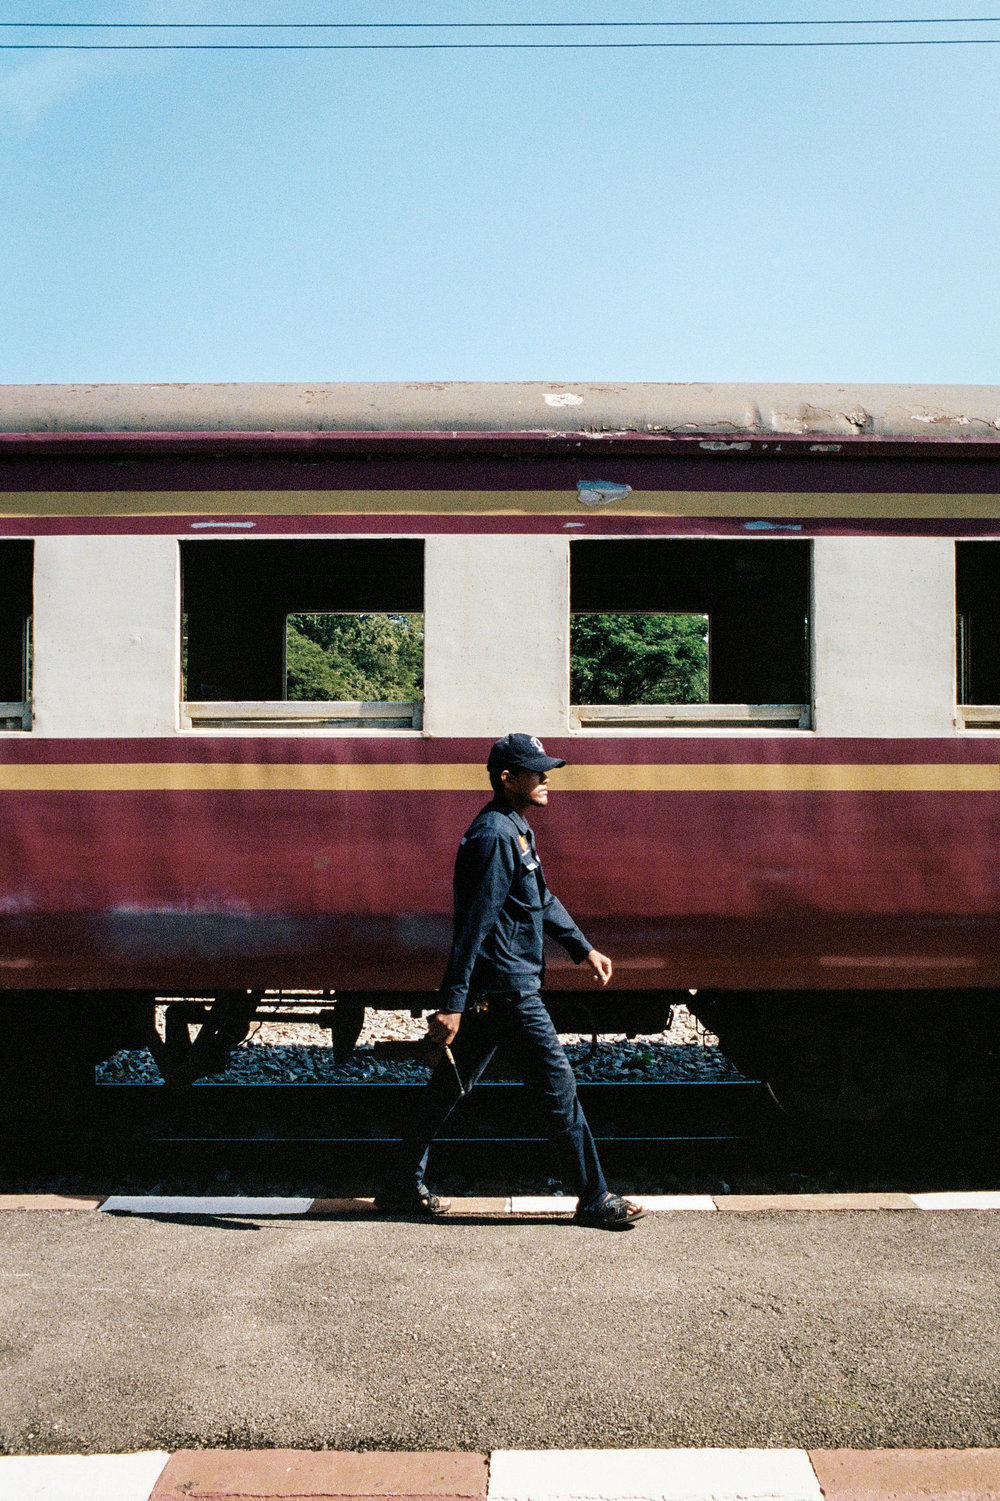 A railway official walks along a passenger train in Kanchanaburi. The train runs along a portion of the Burma Railway, built by POWs under Japanese command during WWII. Only a small portion of the railway remains, serving tourists and the local community.